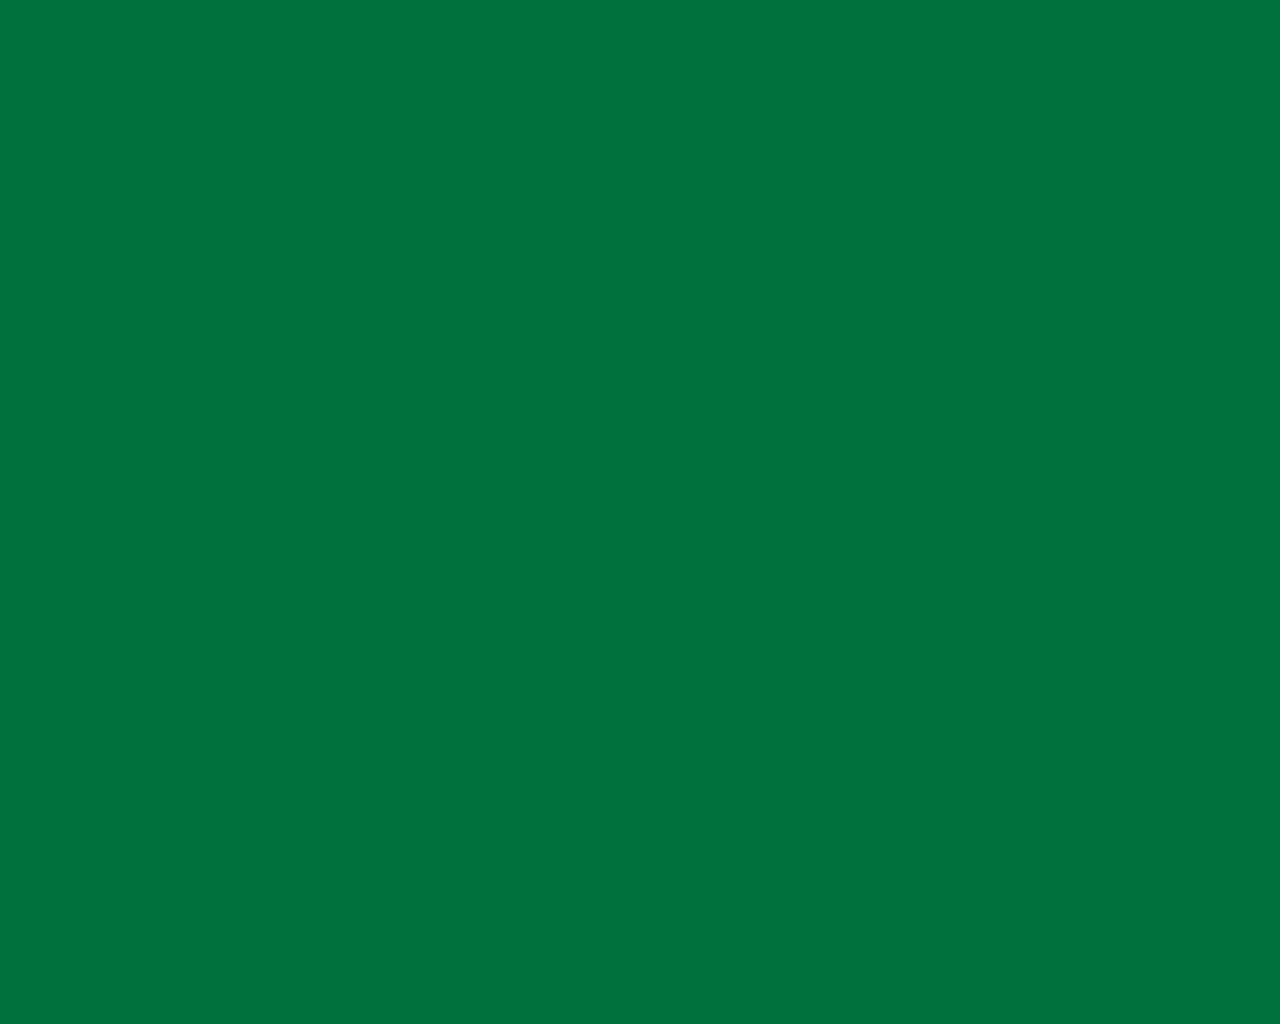 1280x1024 Dartmouth Green Solid Color Background